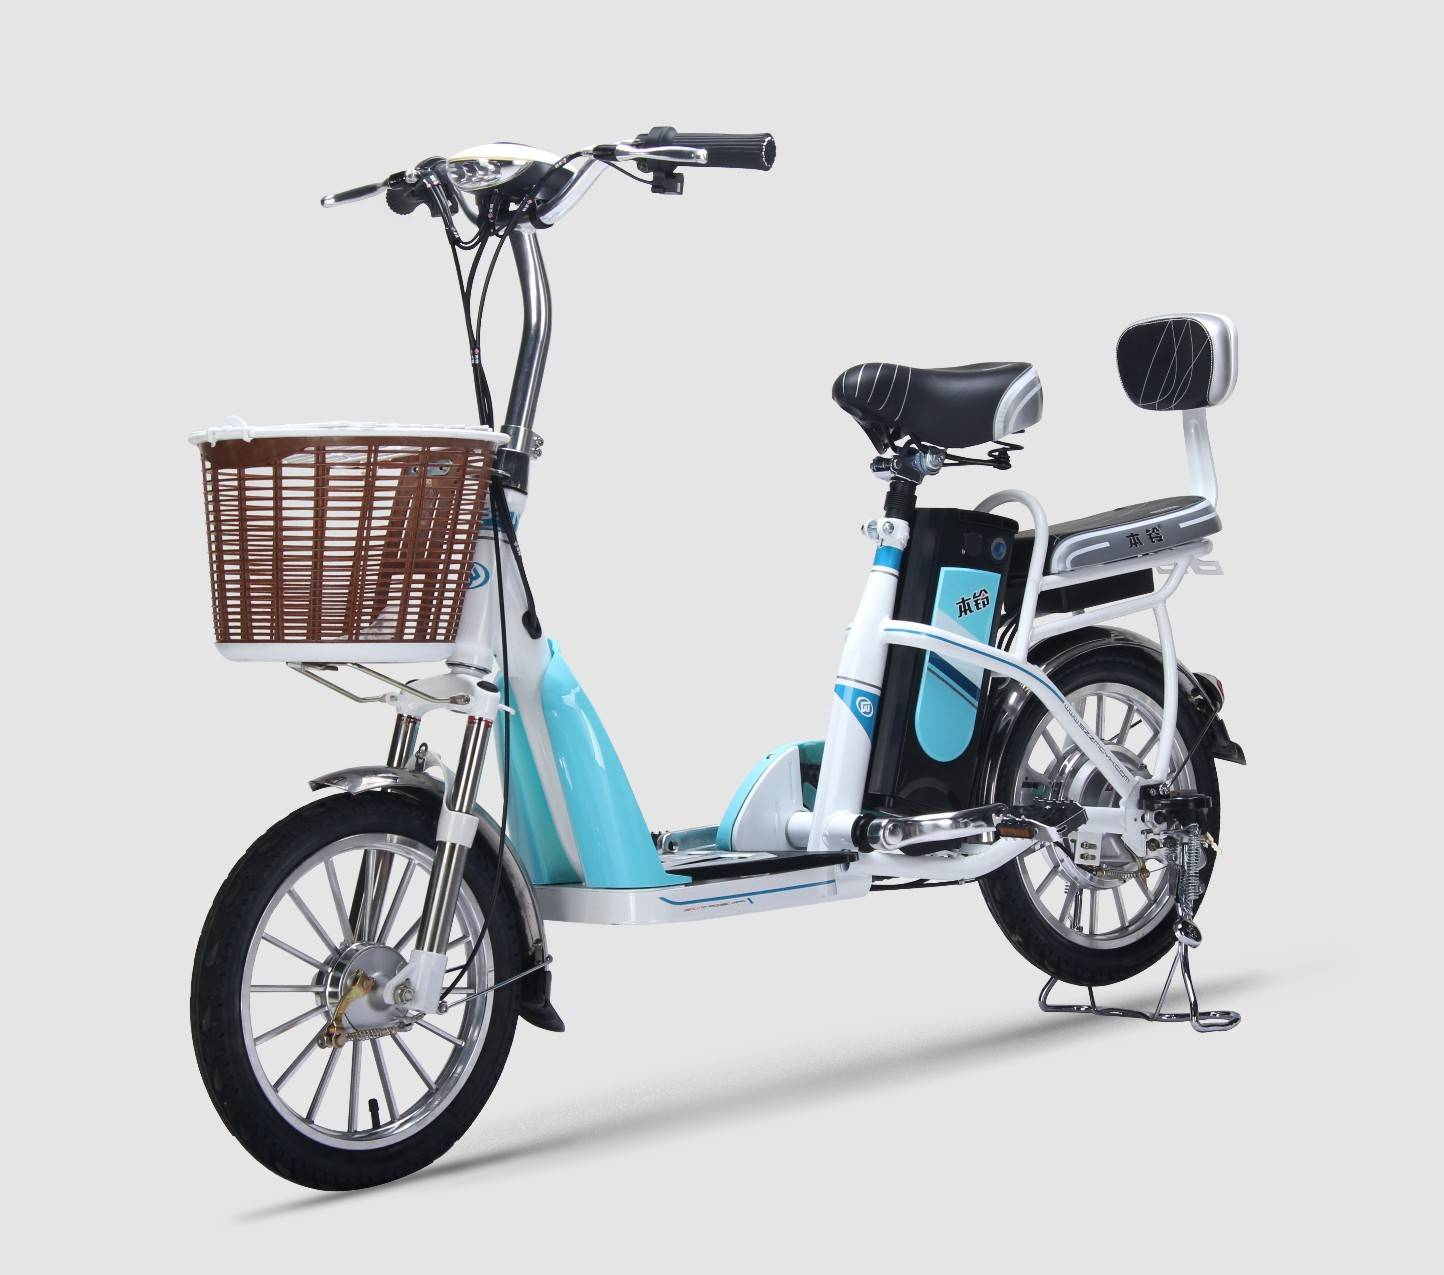 16 inch 240W 25KM/H Electric Bicycle with padals